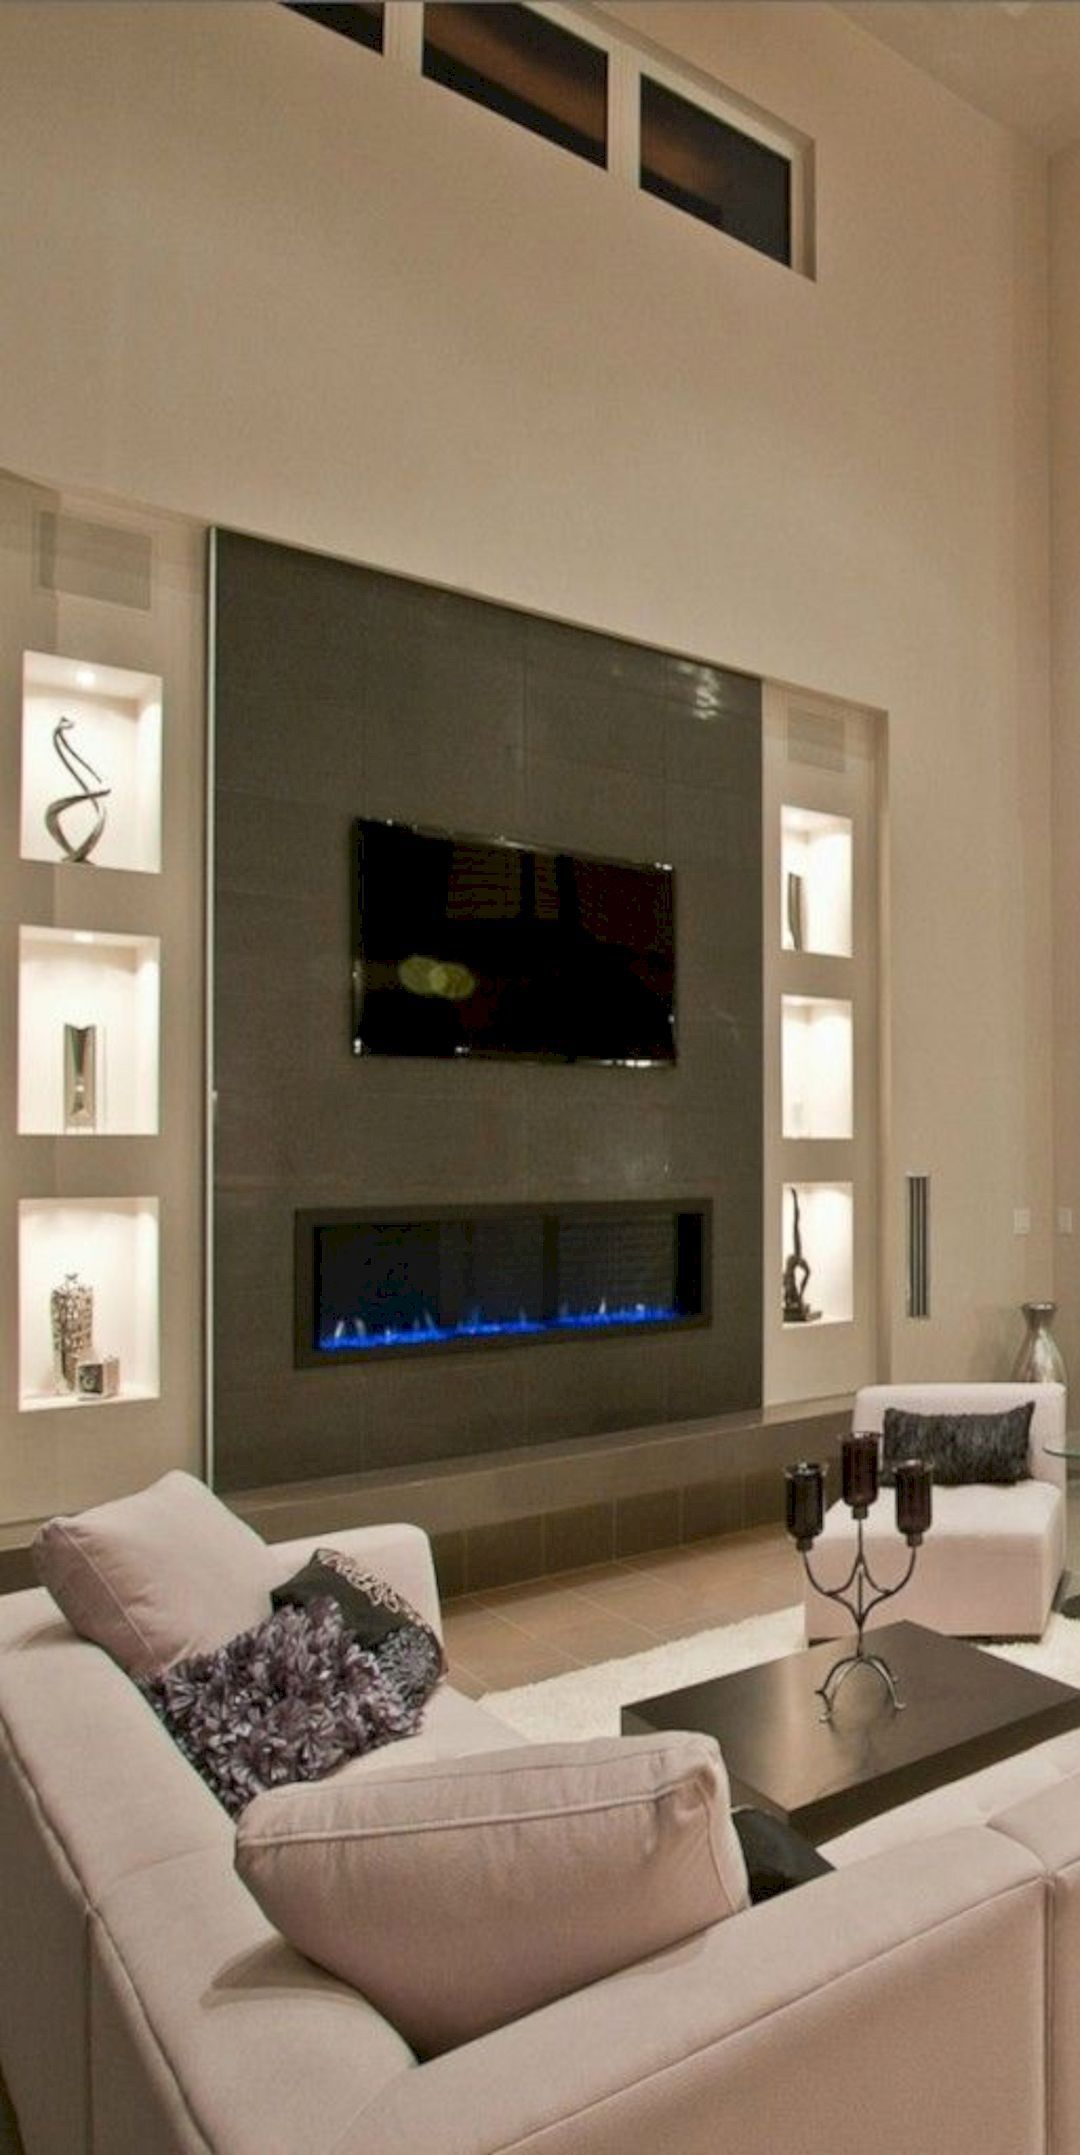 16 Interior Design Ideas For Led Tv Living Room With Fireplace Fireplace Tv Wall Fireplace Design